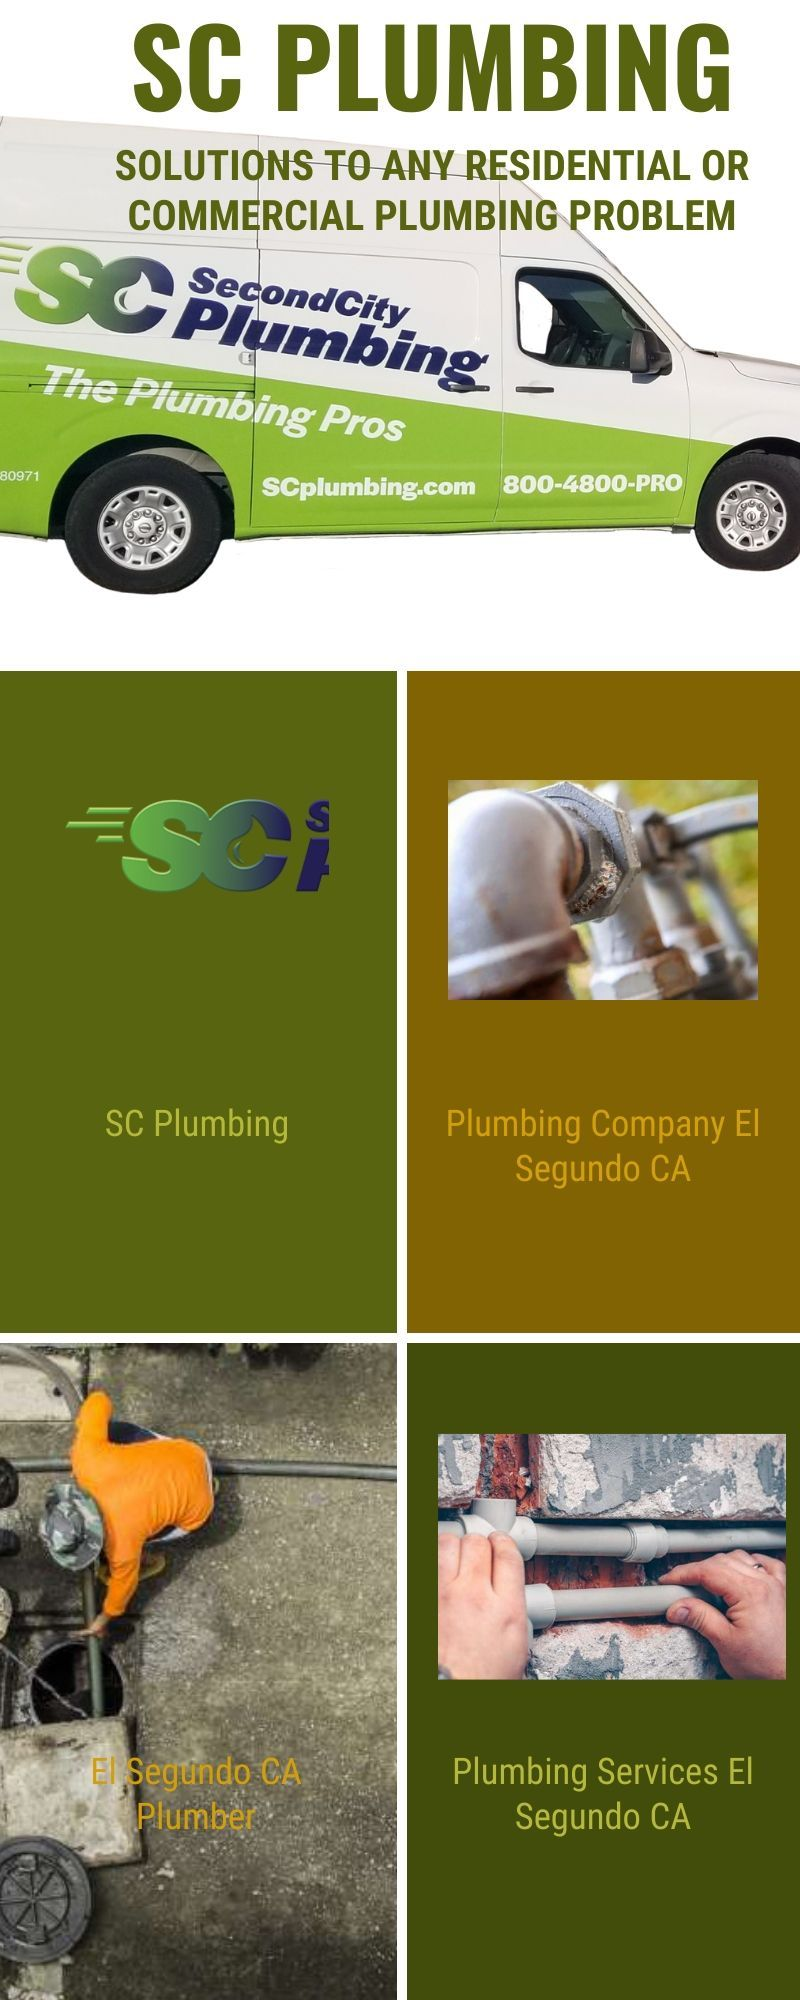 For Over 30 Years Sc Plumbing Has Been Servicing Residential And